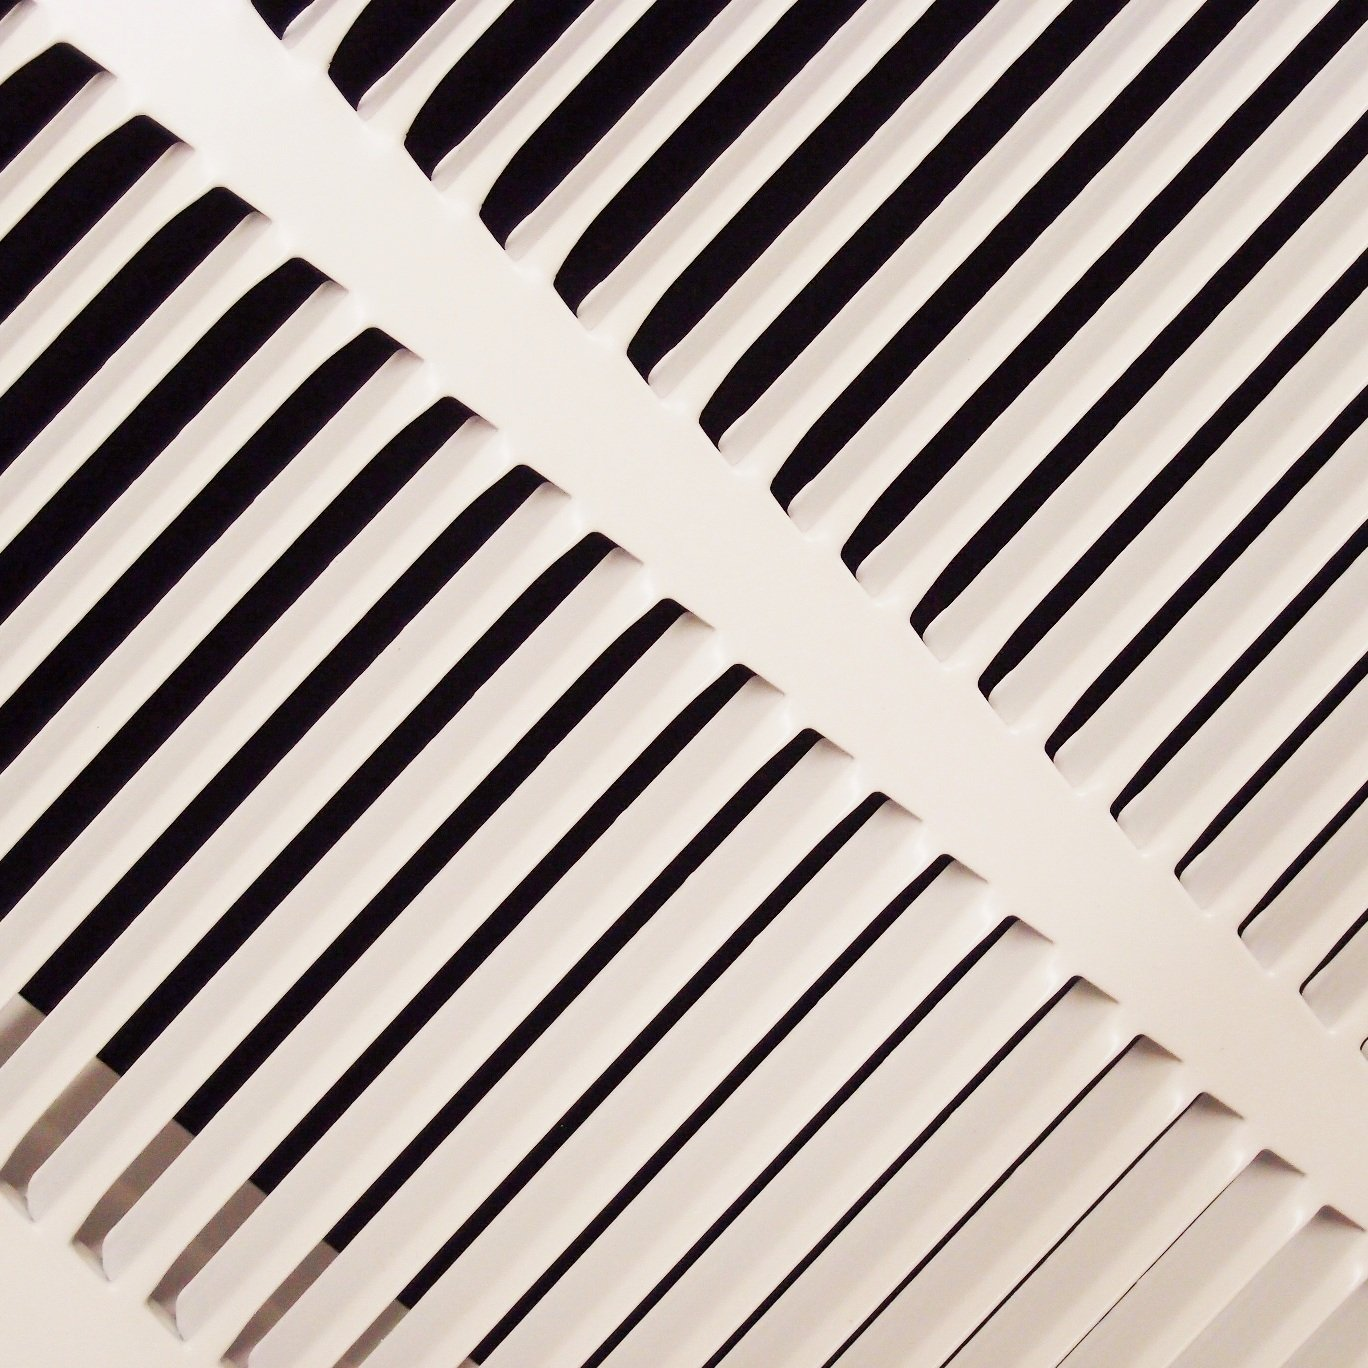 ceiling Recommended Fixed Hinged Outer Dimensions: 27.75w X 16.75h White 25 X 14 Steel Return Air Filter Grille for 1 Filter HVAC DUCT COVER HVAC Premium Flat Stamped Face